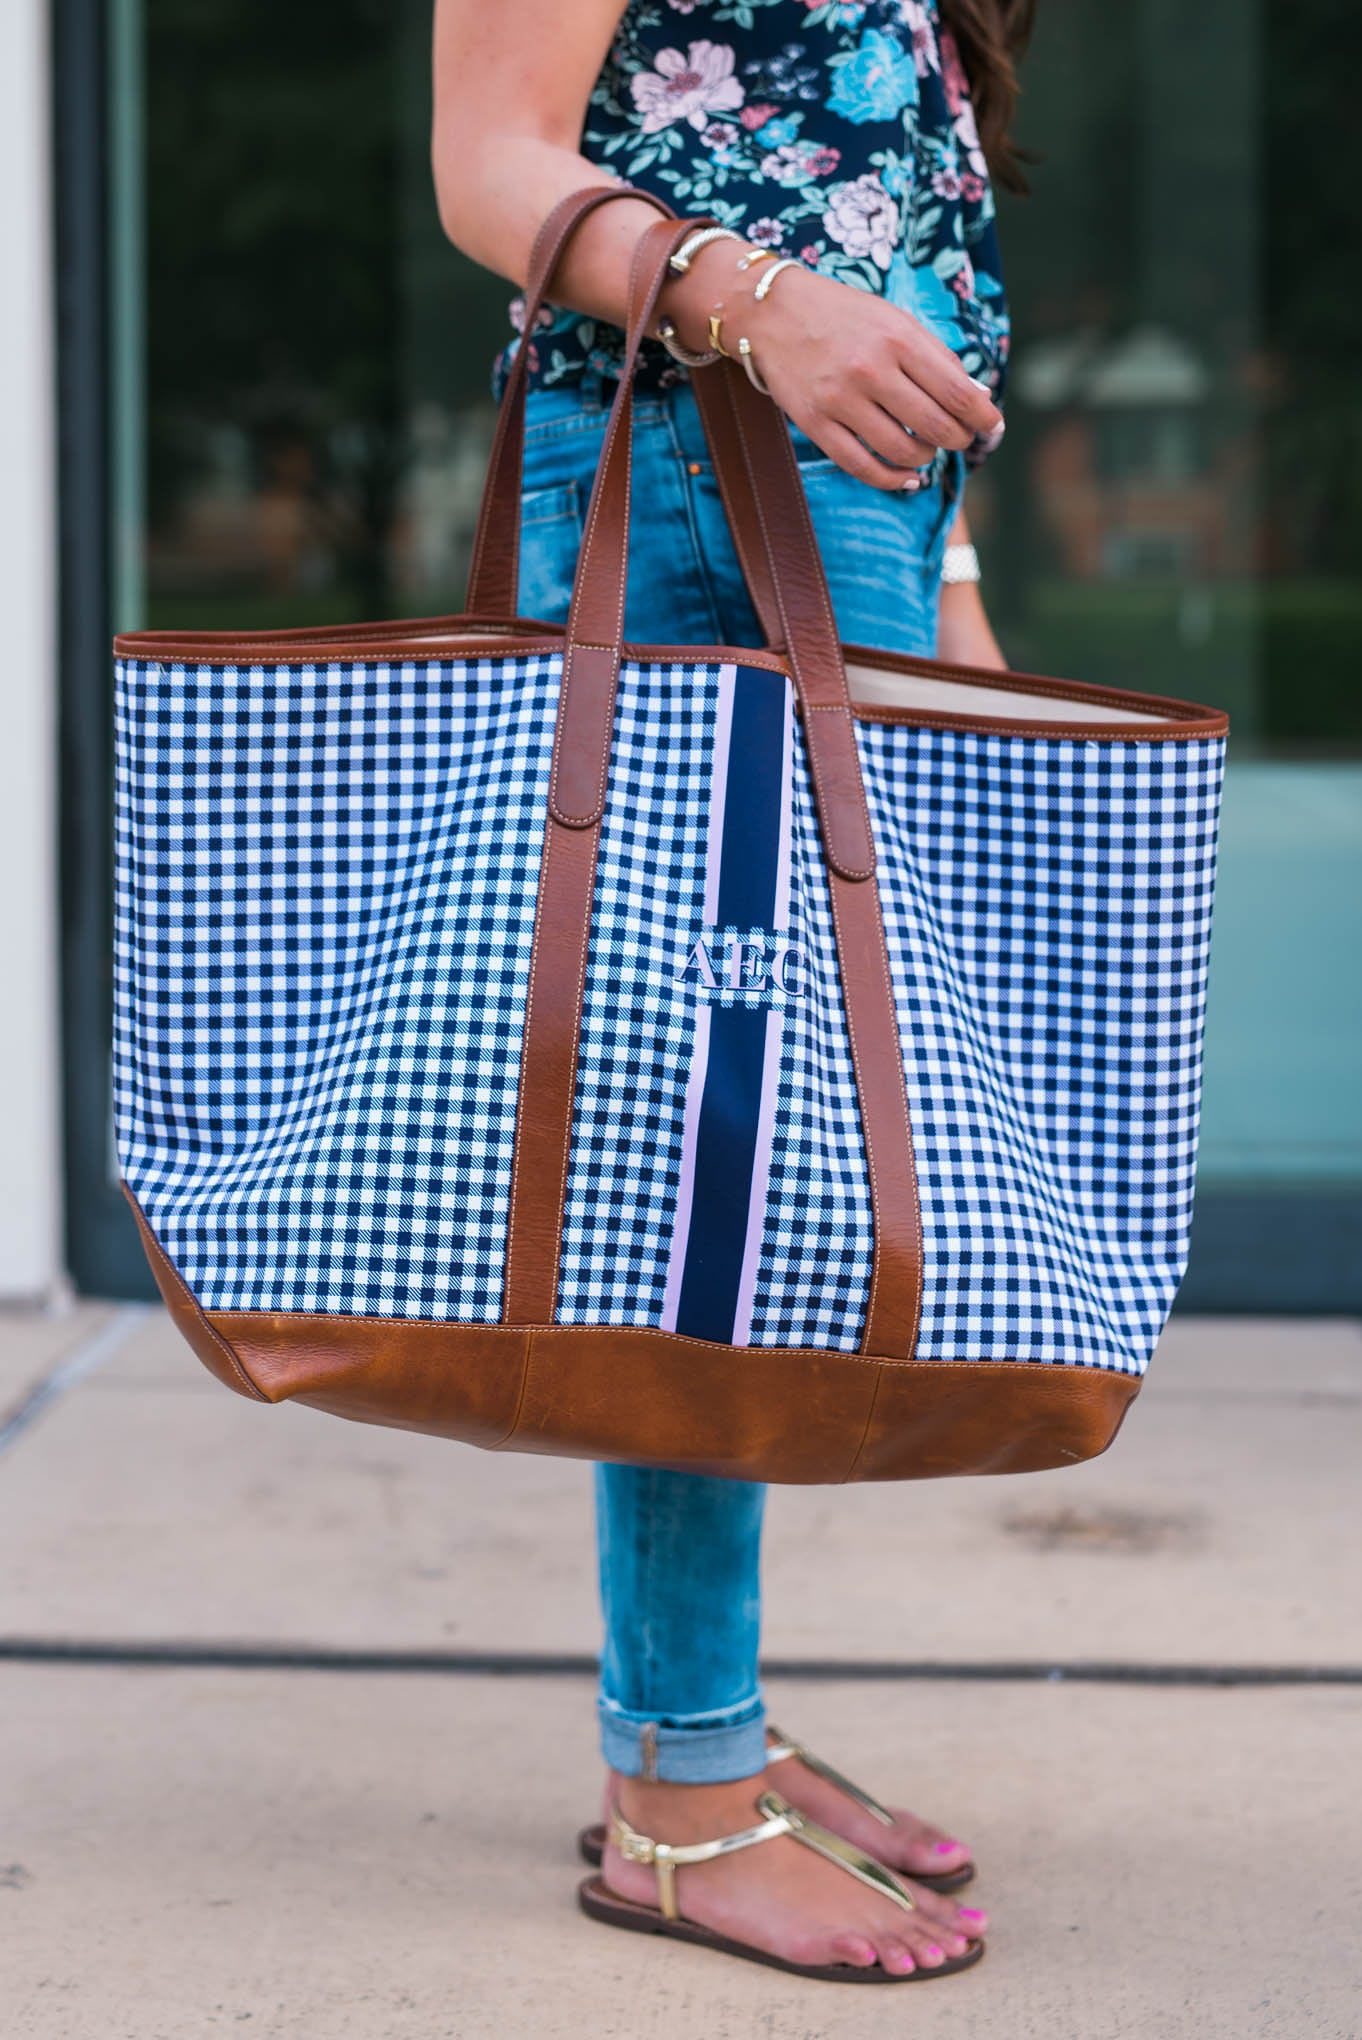 Barrington Gifts Tote - The St. Charles Yacht Tote